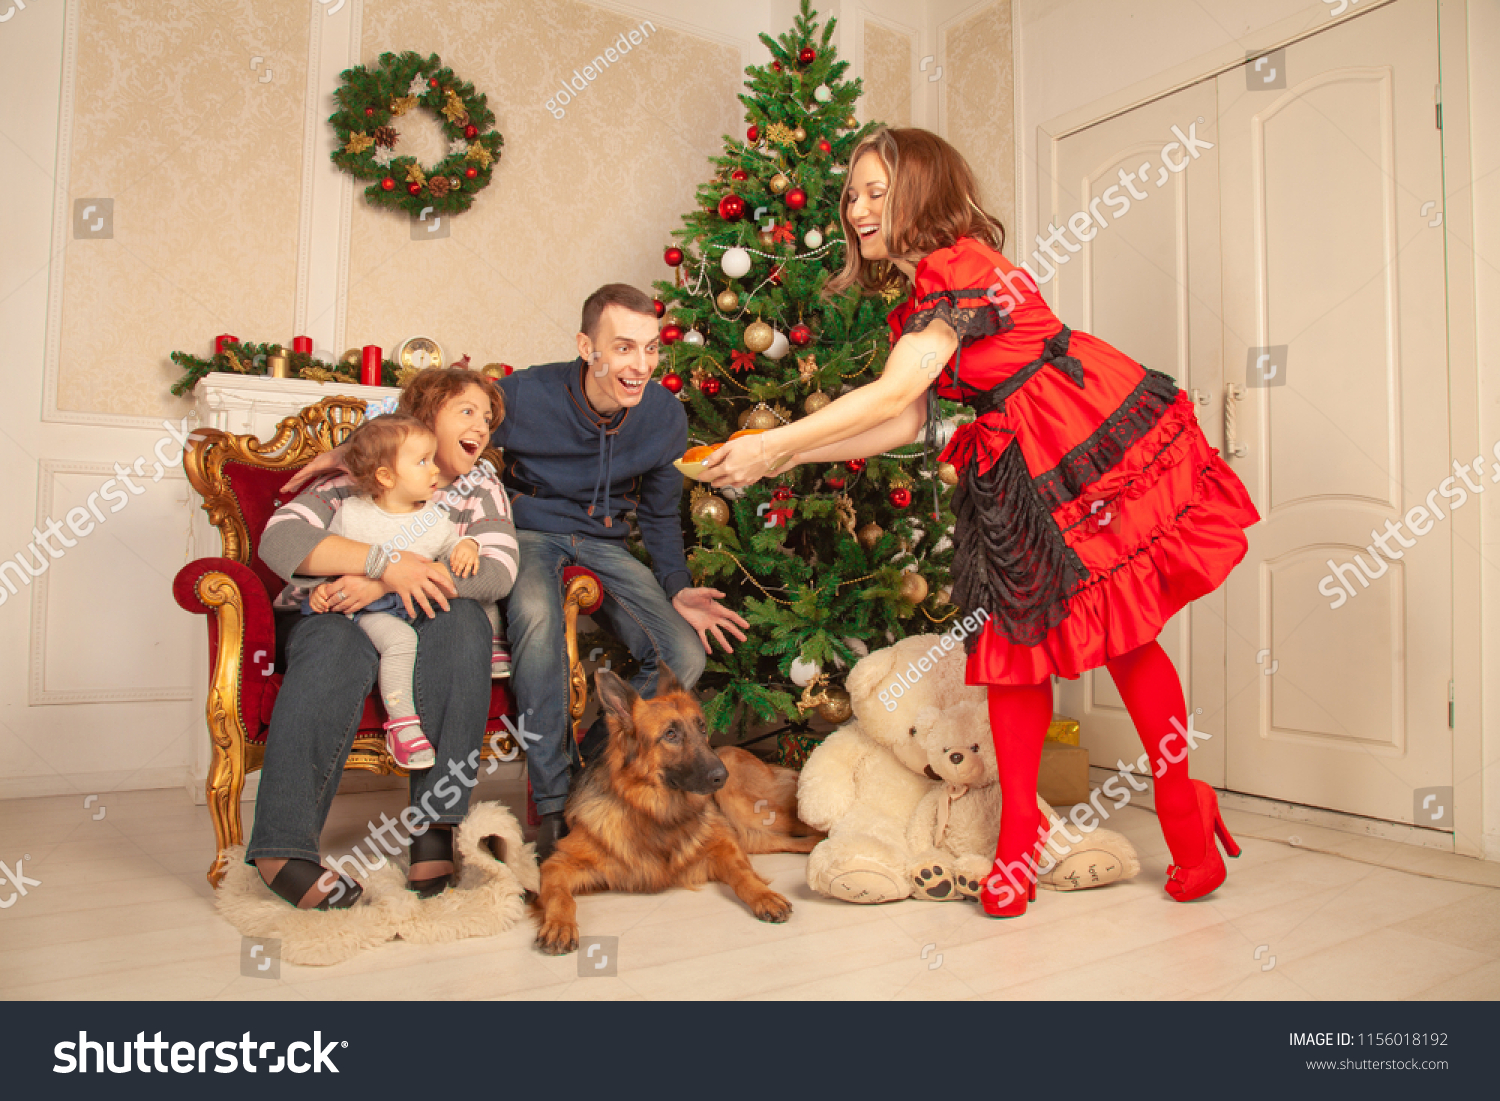 Sweet Kind Family Poses Near Christmas Stock Photo Edit Now 1156018192 You can also import from gedcom or familyscript format. https www shutterstock com image photo sweet kind family poses near christmas 1156018192